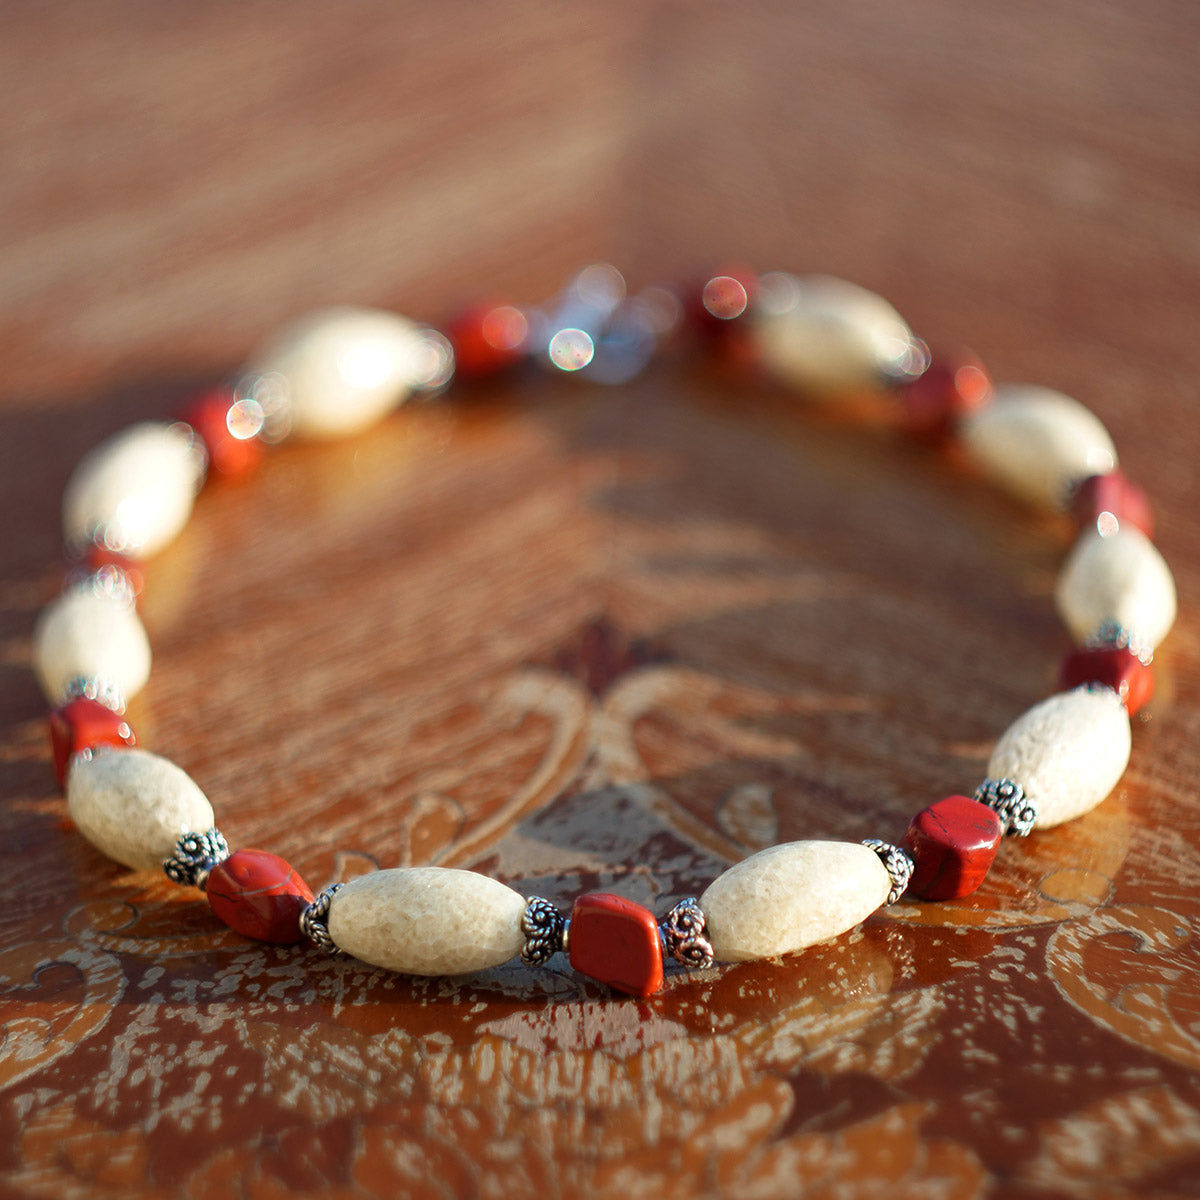 Women's Necklace in Sand Tone Faience with Red Jasper Hand-Hewn Nuggets - Em Hotep Collection